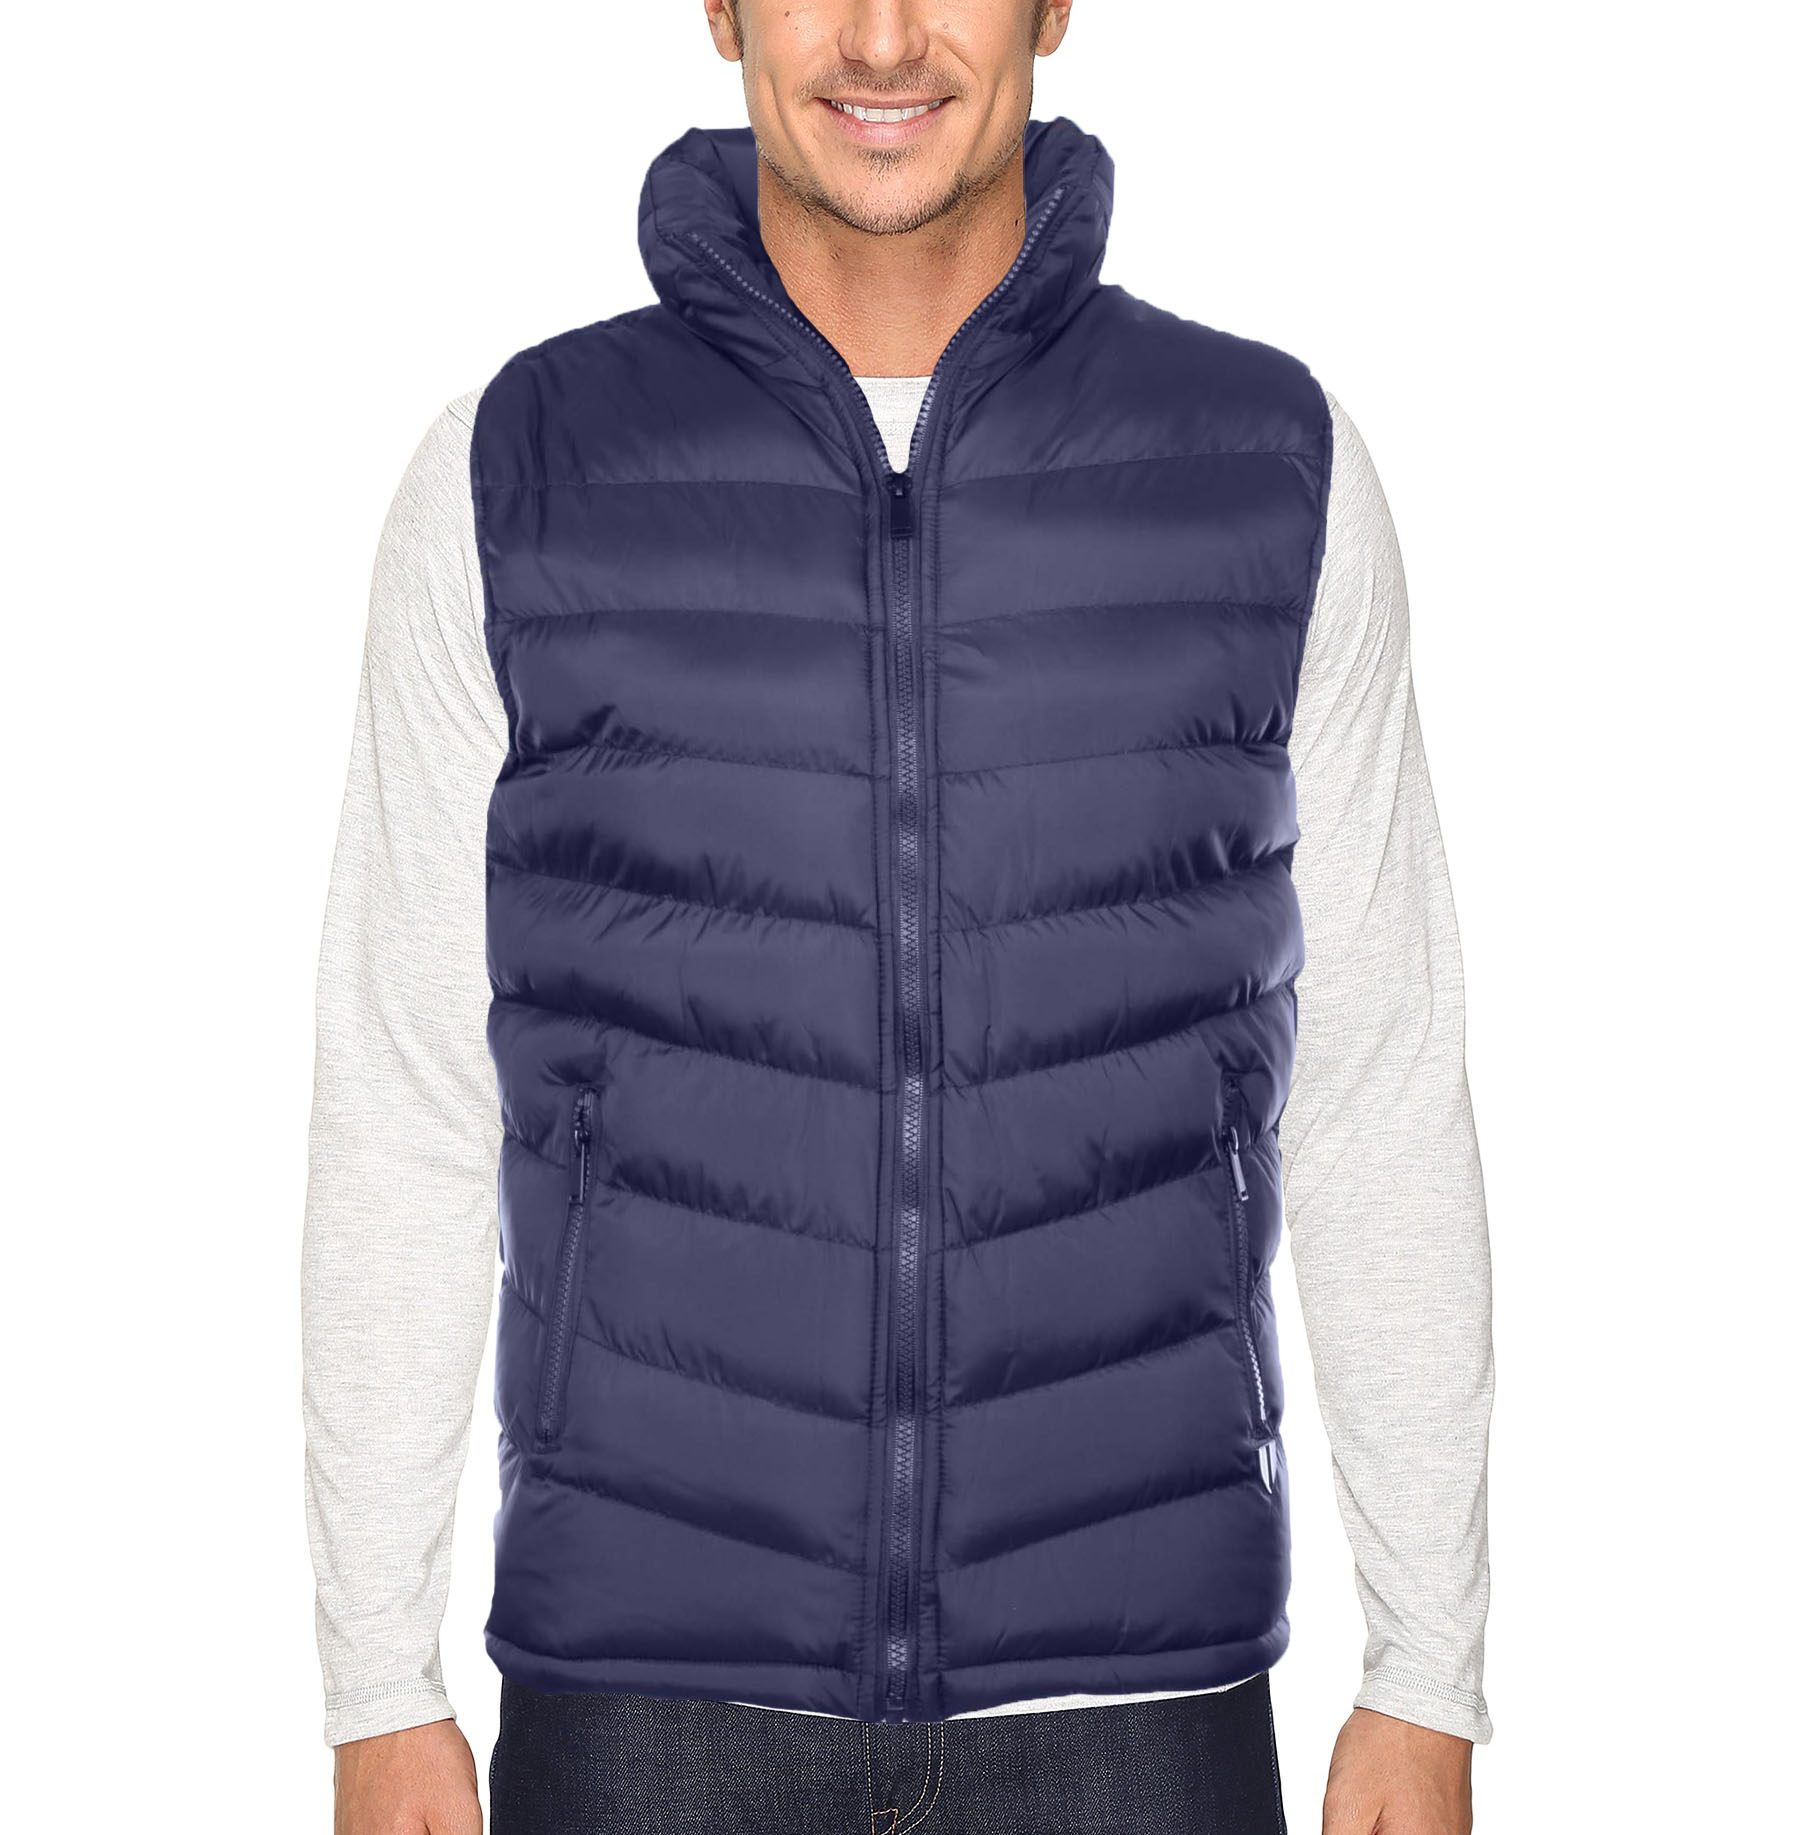 The SCOTTeVEST Puffer Jacket is a warm puffer jacket with the hidden SeV features of concealed pockets. Carry your gadgets with you, and maintain your style, while keeping warm outside.